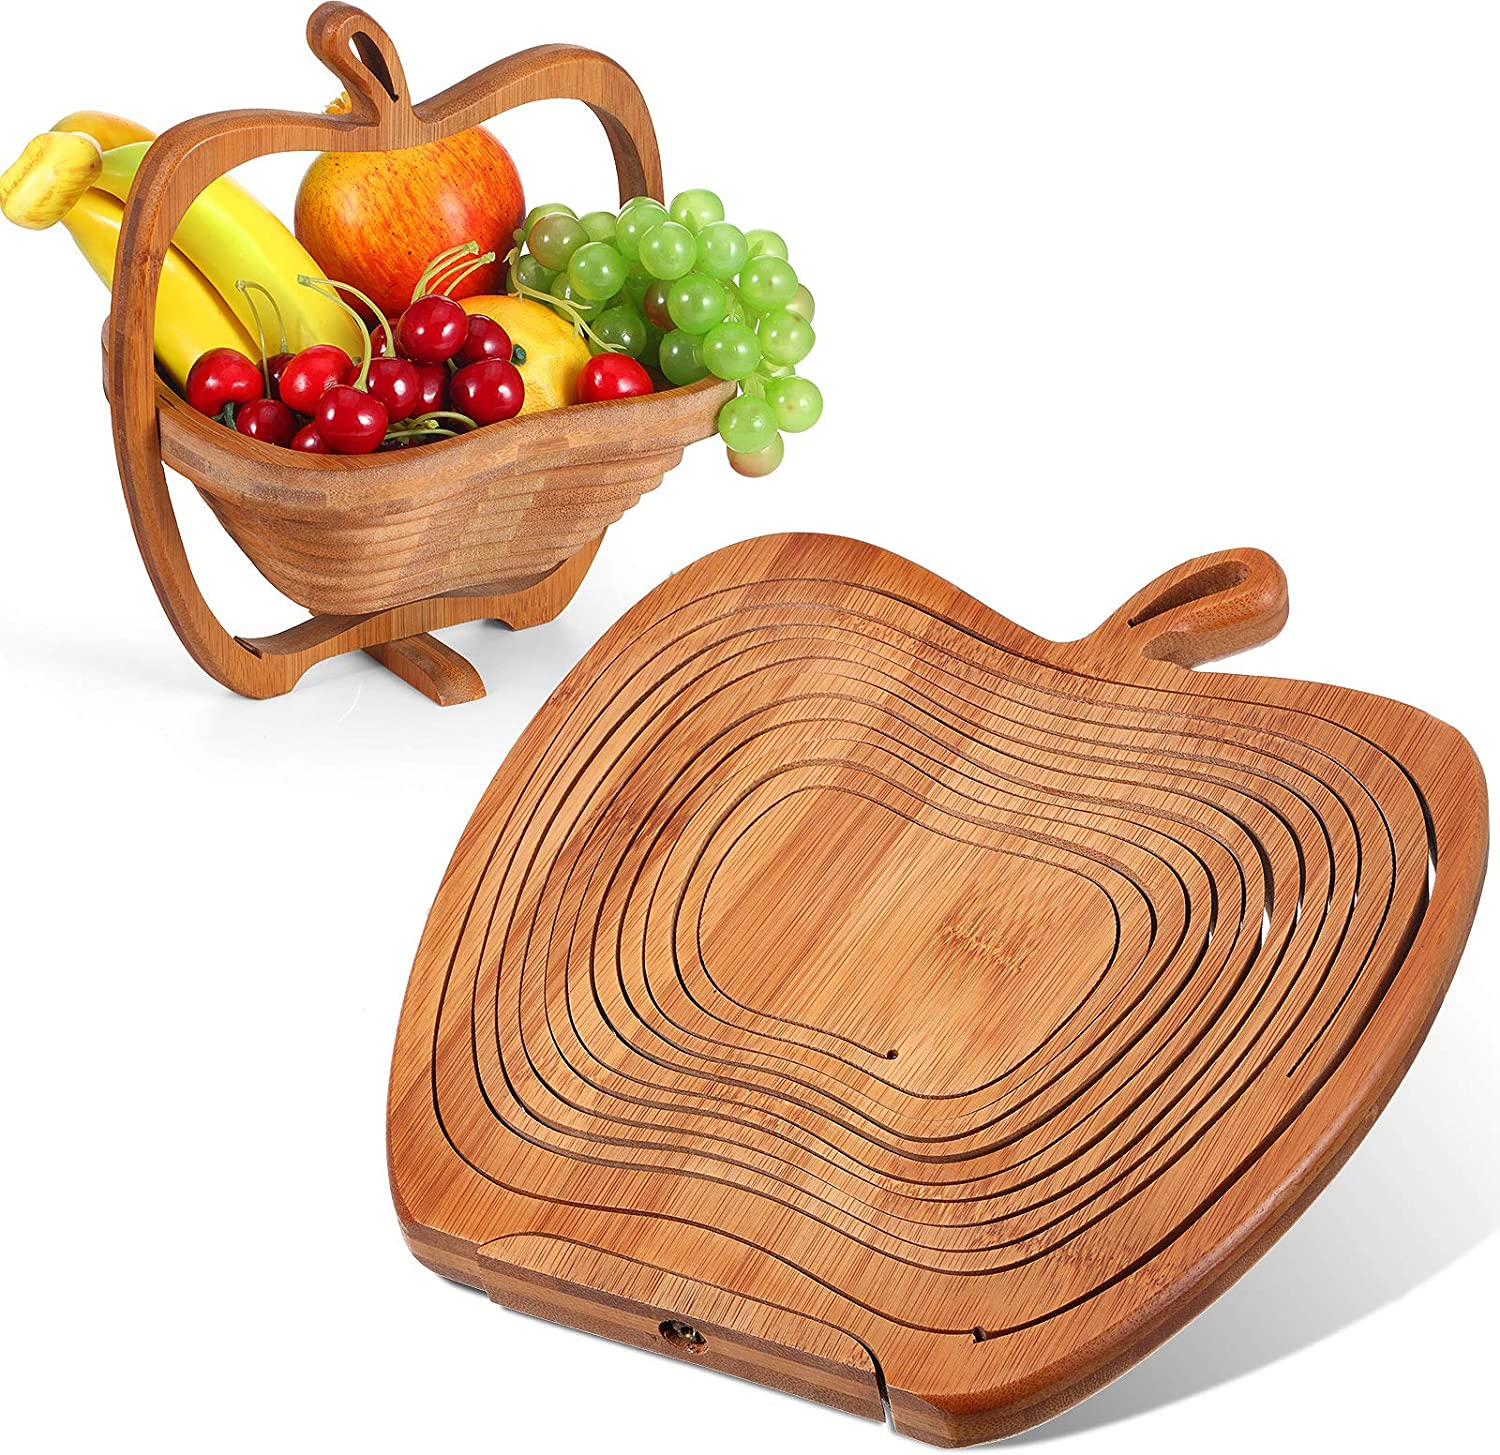 9 x 8.5 Inches Collapsible Bamboo Fruit Basket Dried Fruit Basket Tray Turns into Basket Wooden Snack Box Holiday Food Tray Fruit Bowl Holder for Kitchen Table